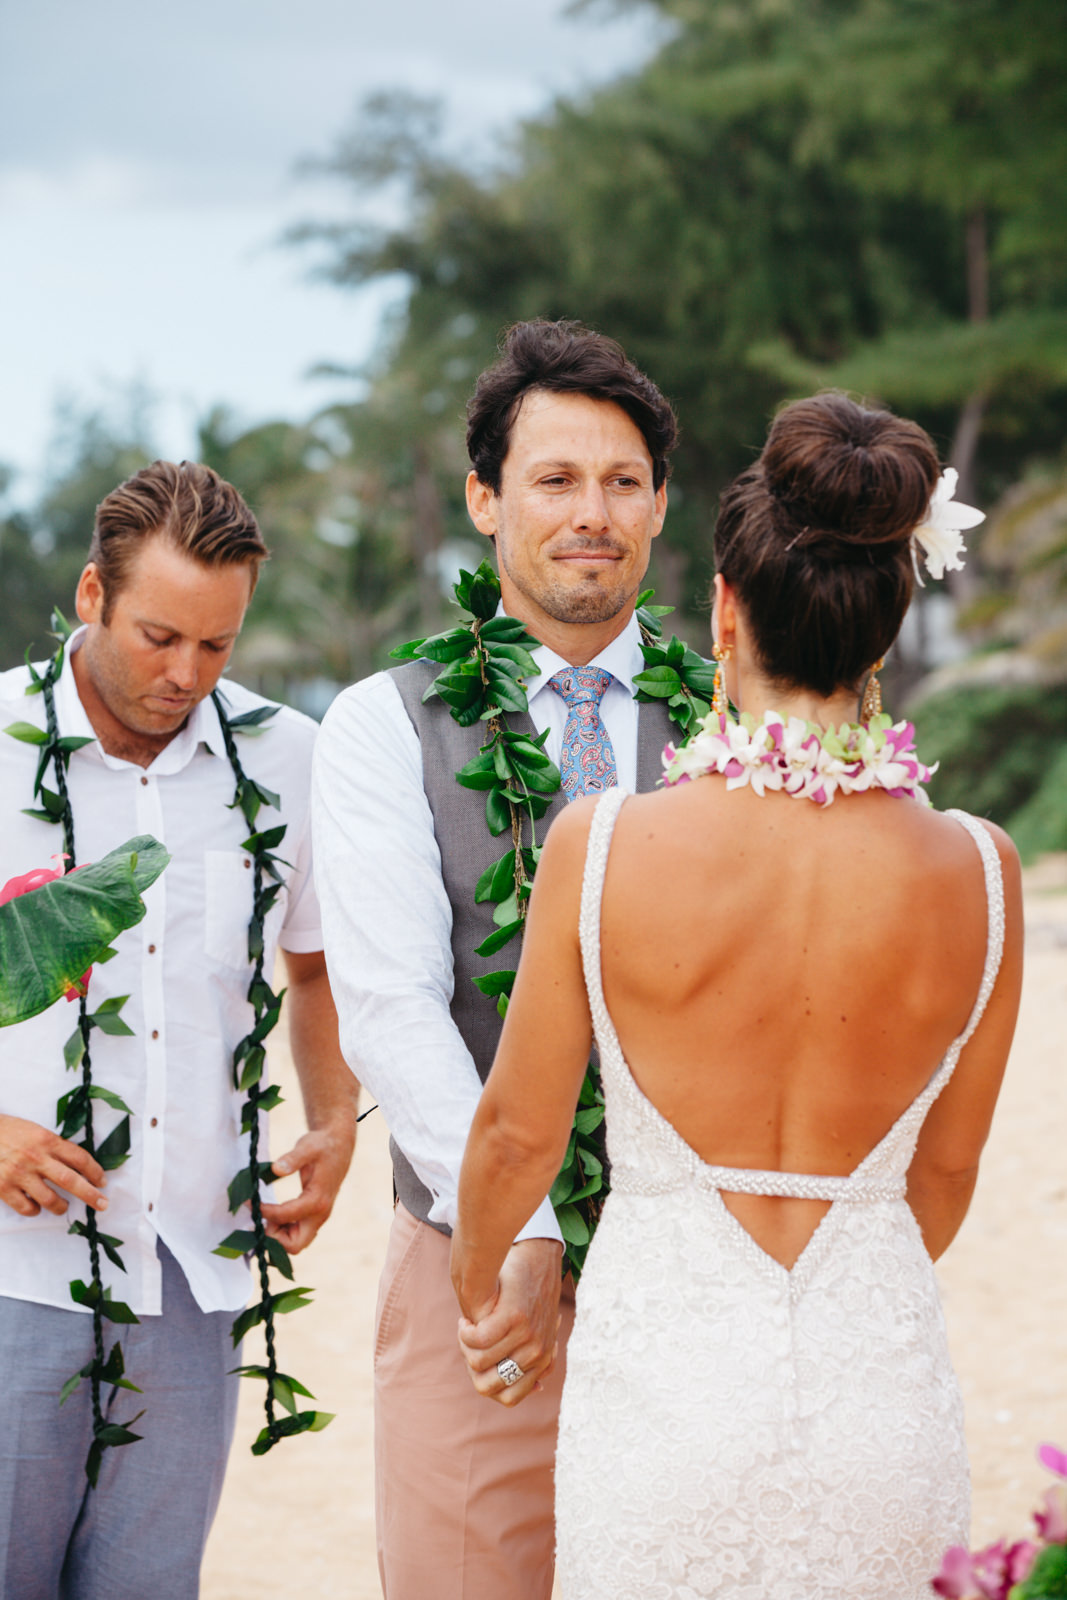 Princeville Hanelei Kauai Hawaii Destination Elopement Wedding 21